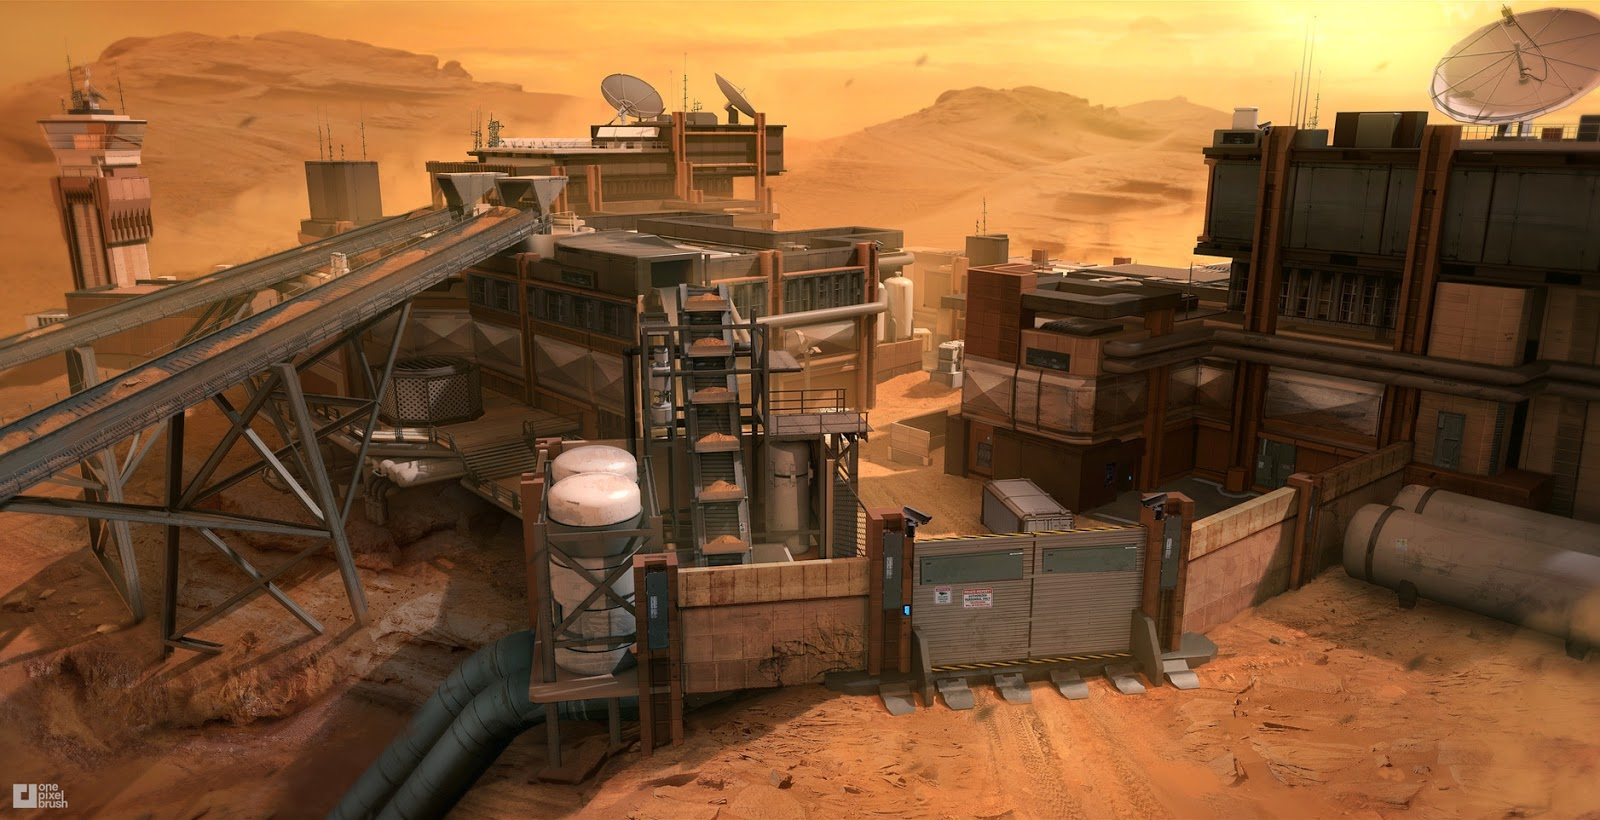 Mars rock quarry by Mike Garn - concept art for Call of Duty Infinite Warfare